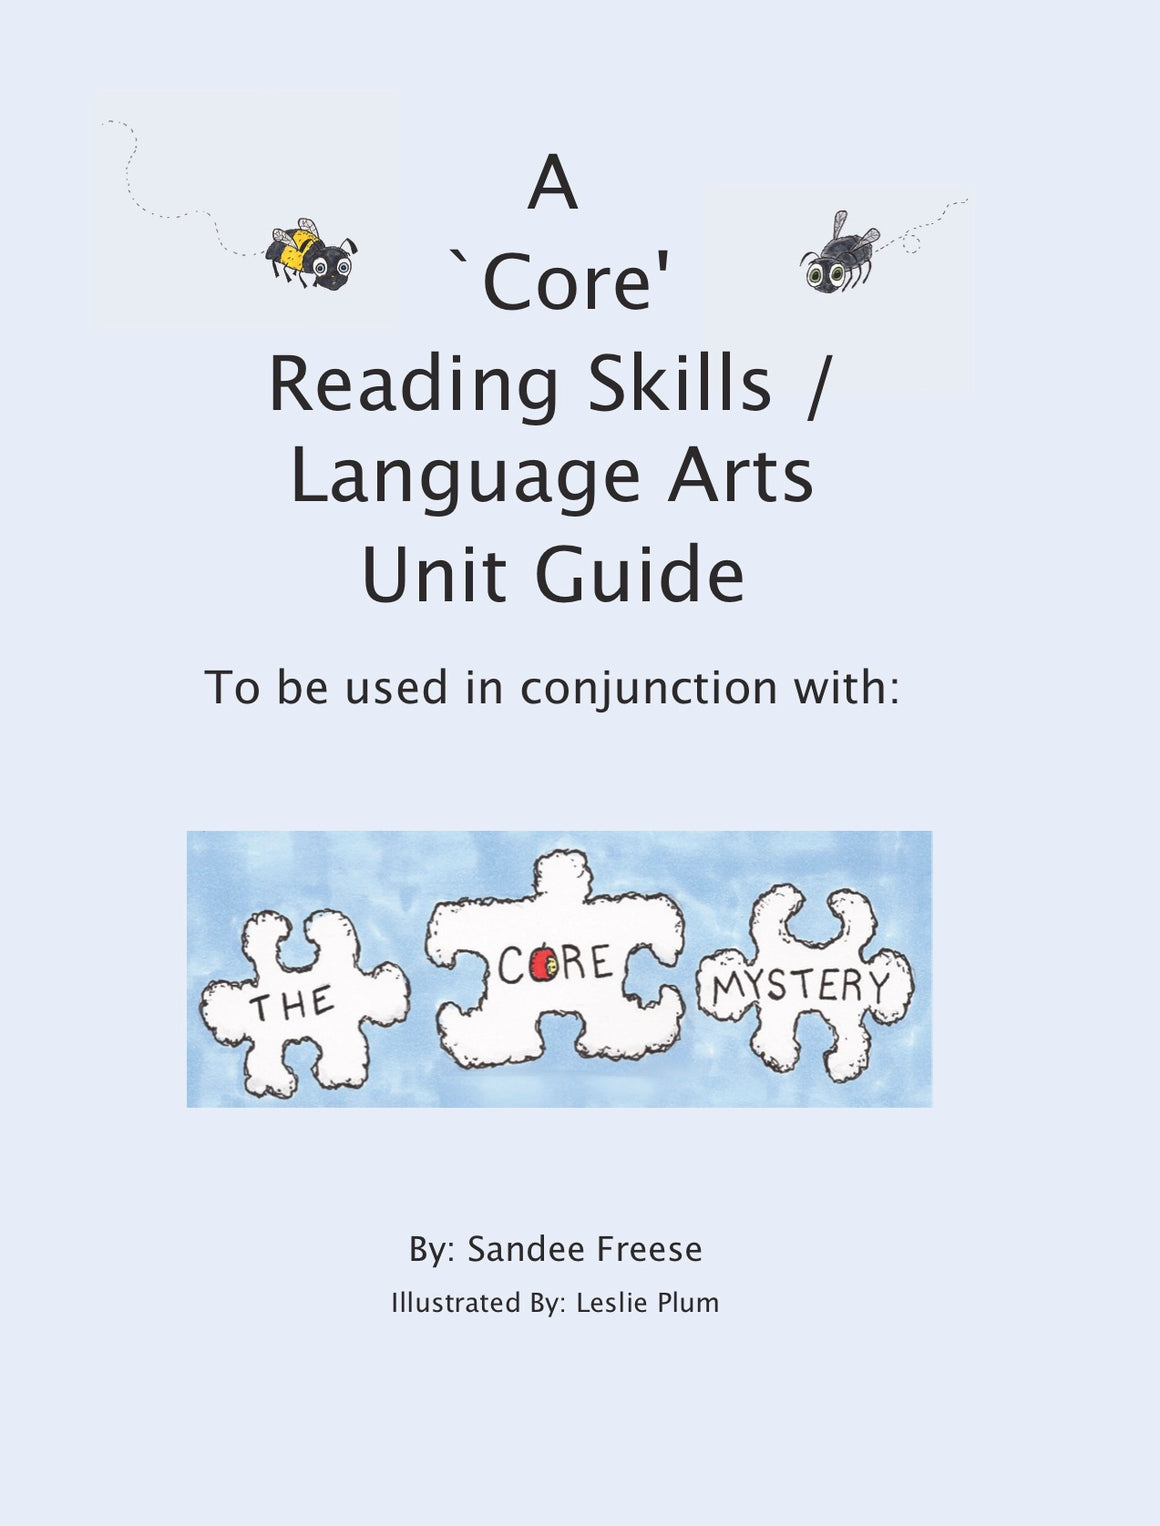 Digital Download - A 'Core' Reading Skills / Language Arts Unit Guide: To be used in conjunction with: The Core Mystery